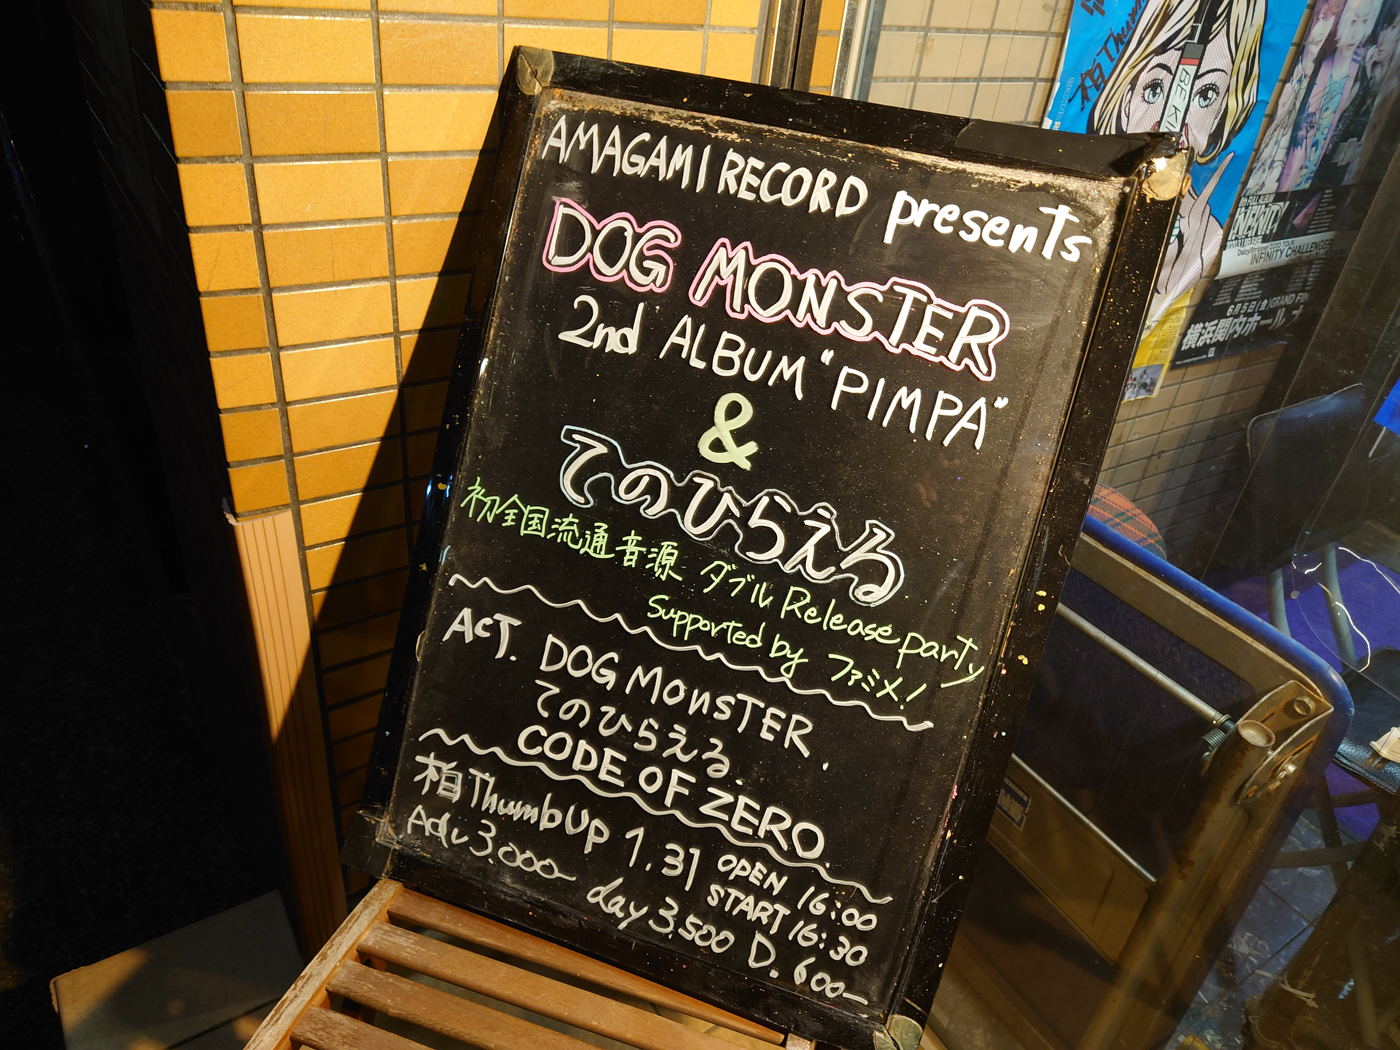 """AMAGAMI RECORD presents 『DOG MONSTER 2ndALBUM""""PIMPA""""&てのひらえる初全国流通音源ダブルRelease party』 supported by ファミメ!@柏thumbup"""